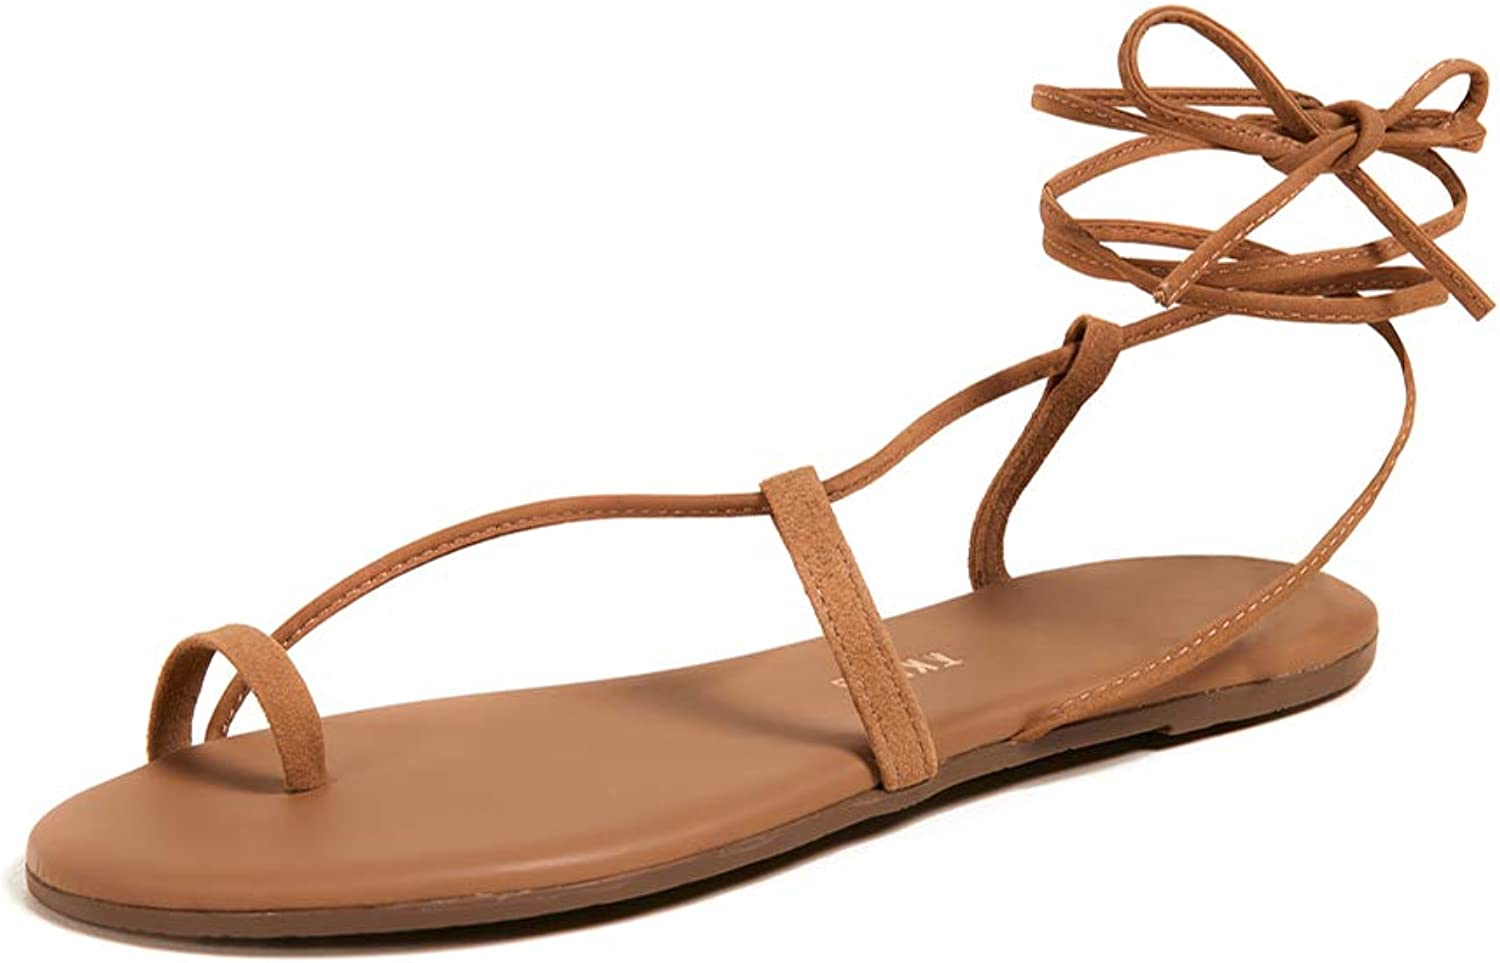 TKEES Women's Jo Lace Up Sandals